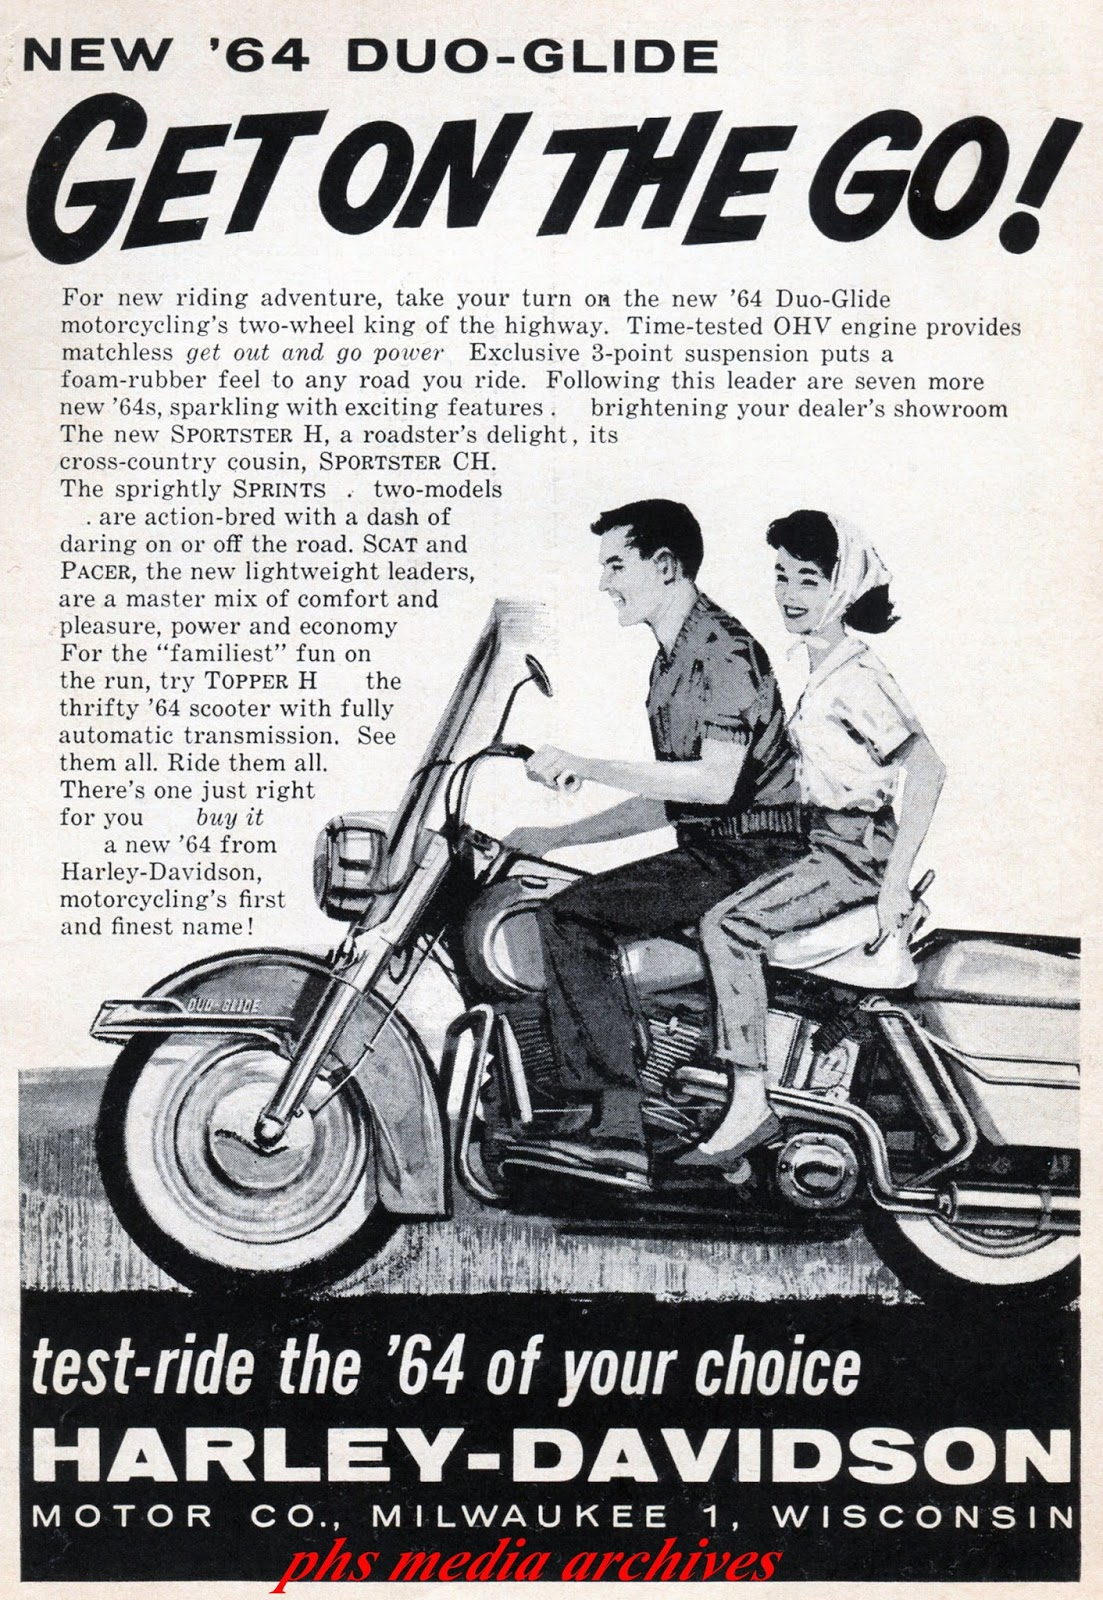 Retro Flashback Feature Those Harley Davidson Babes Early 1972 Golf Cart Wiring Diagram 60s H D Ads Were Mostly Black And White The Woman If She Appeared At All Was Usually A Cute Litttle Annette Funicello Type